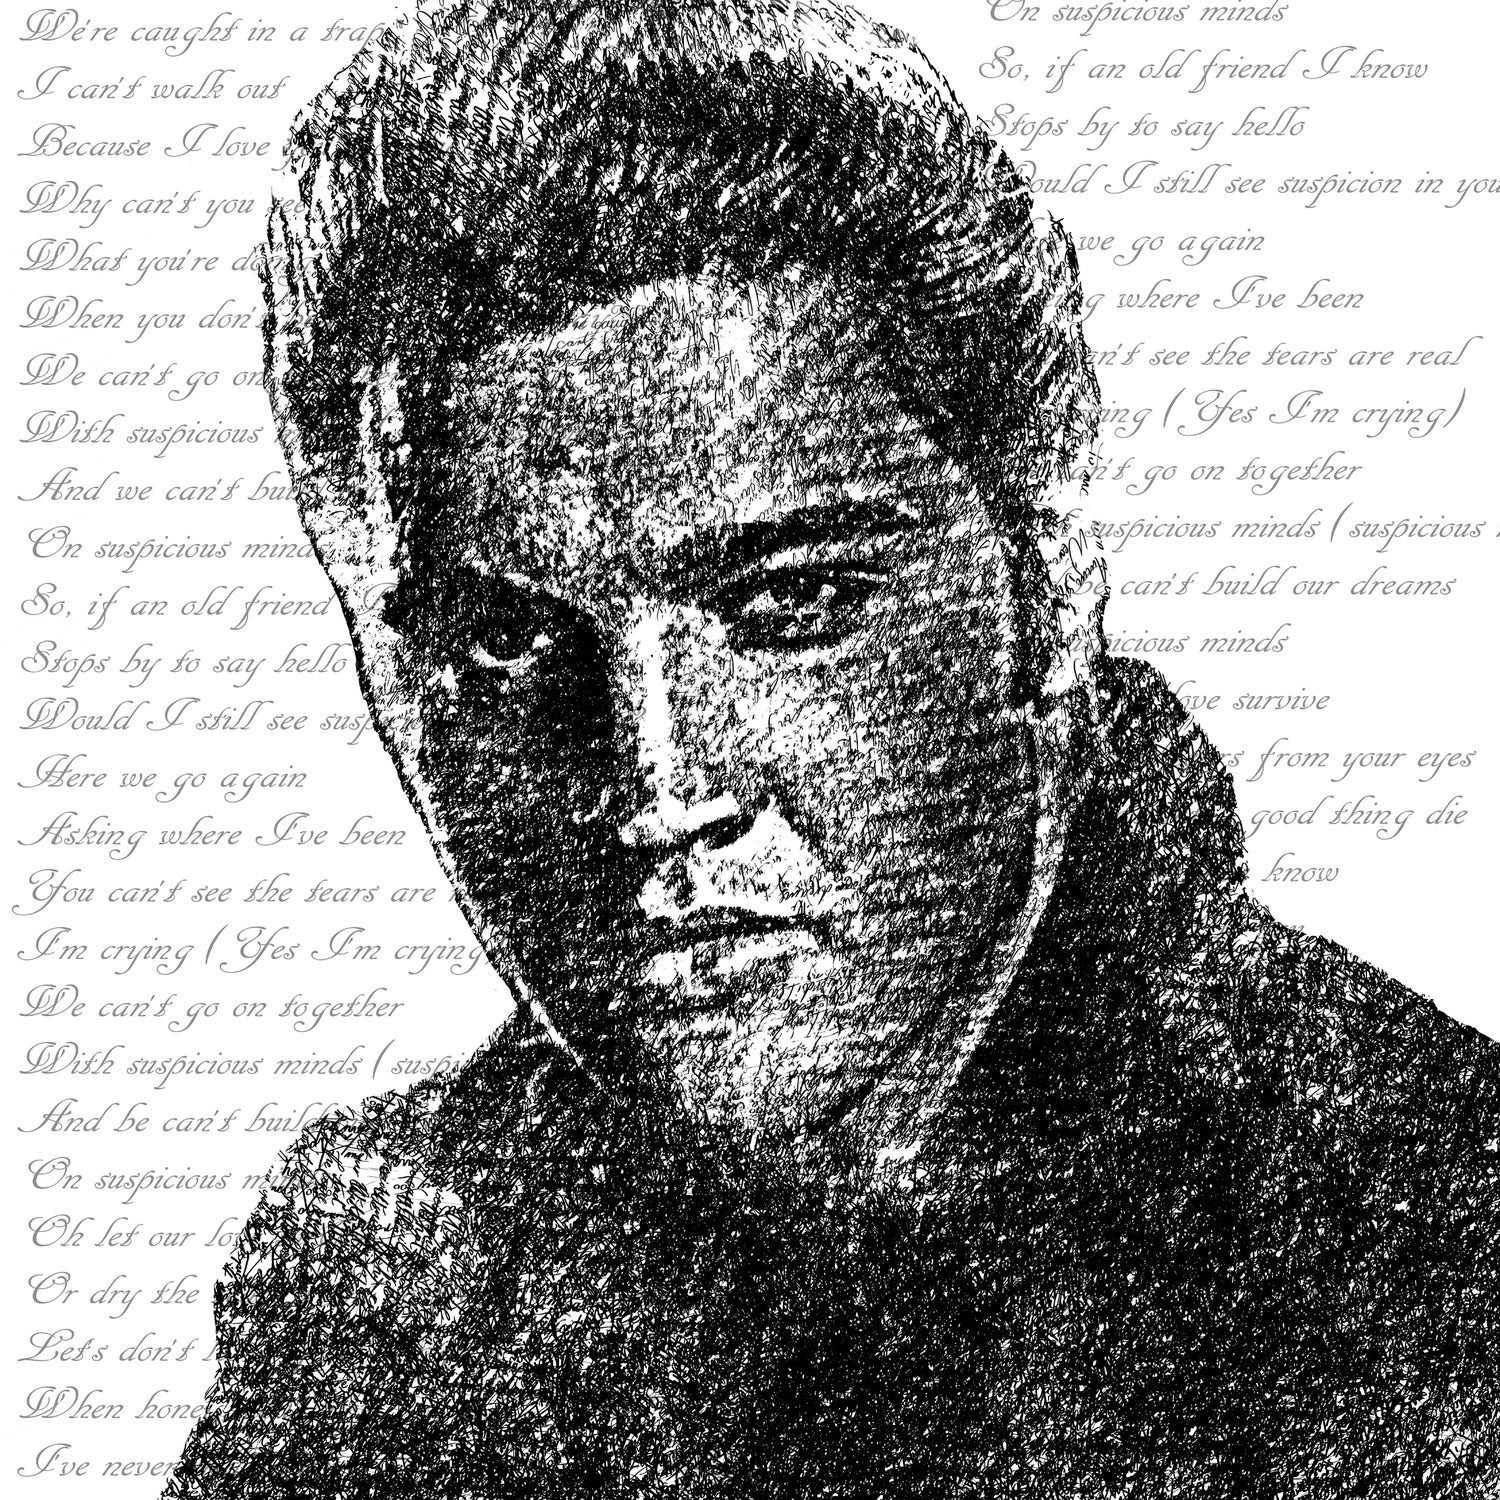 Image of #146 Elvis made with text